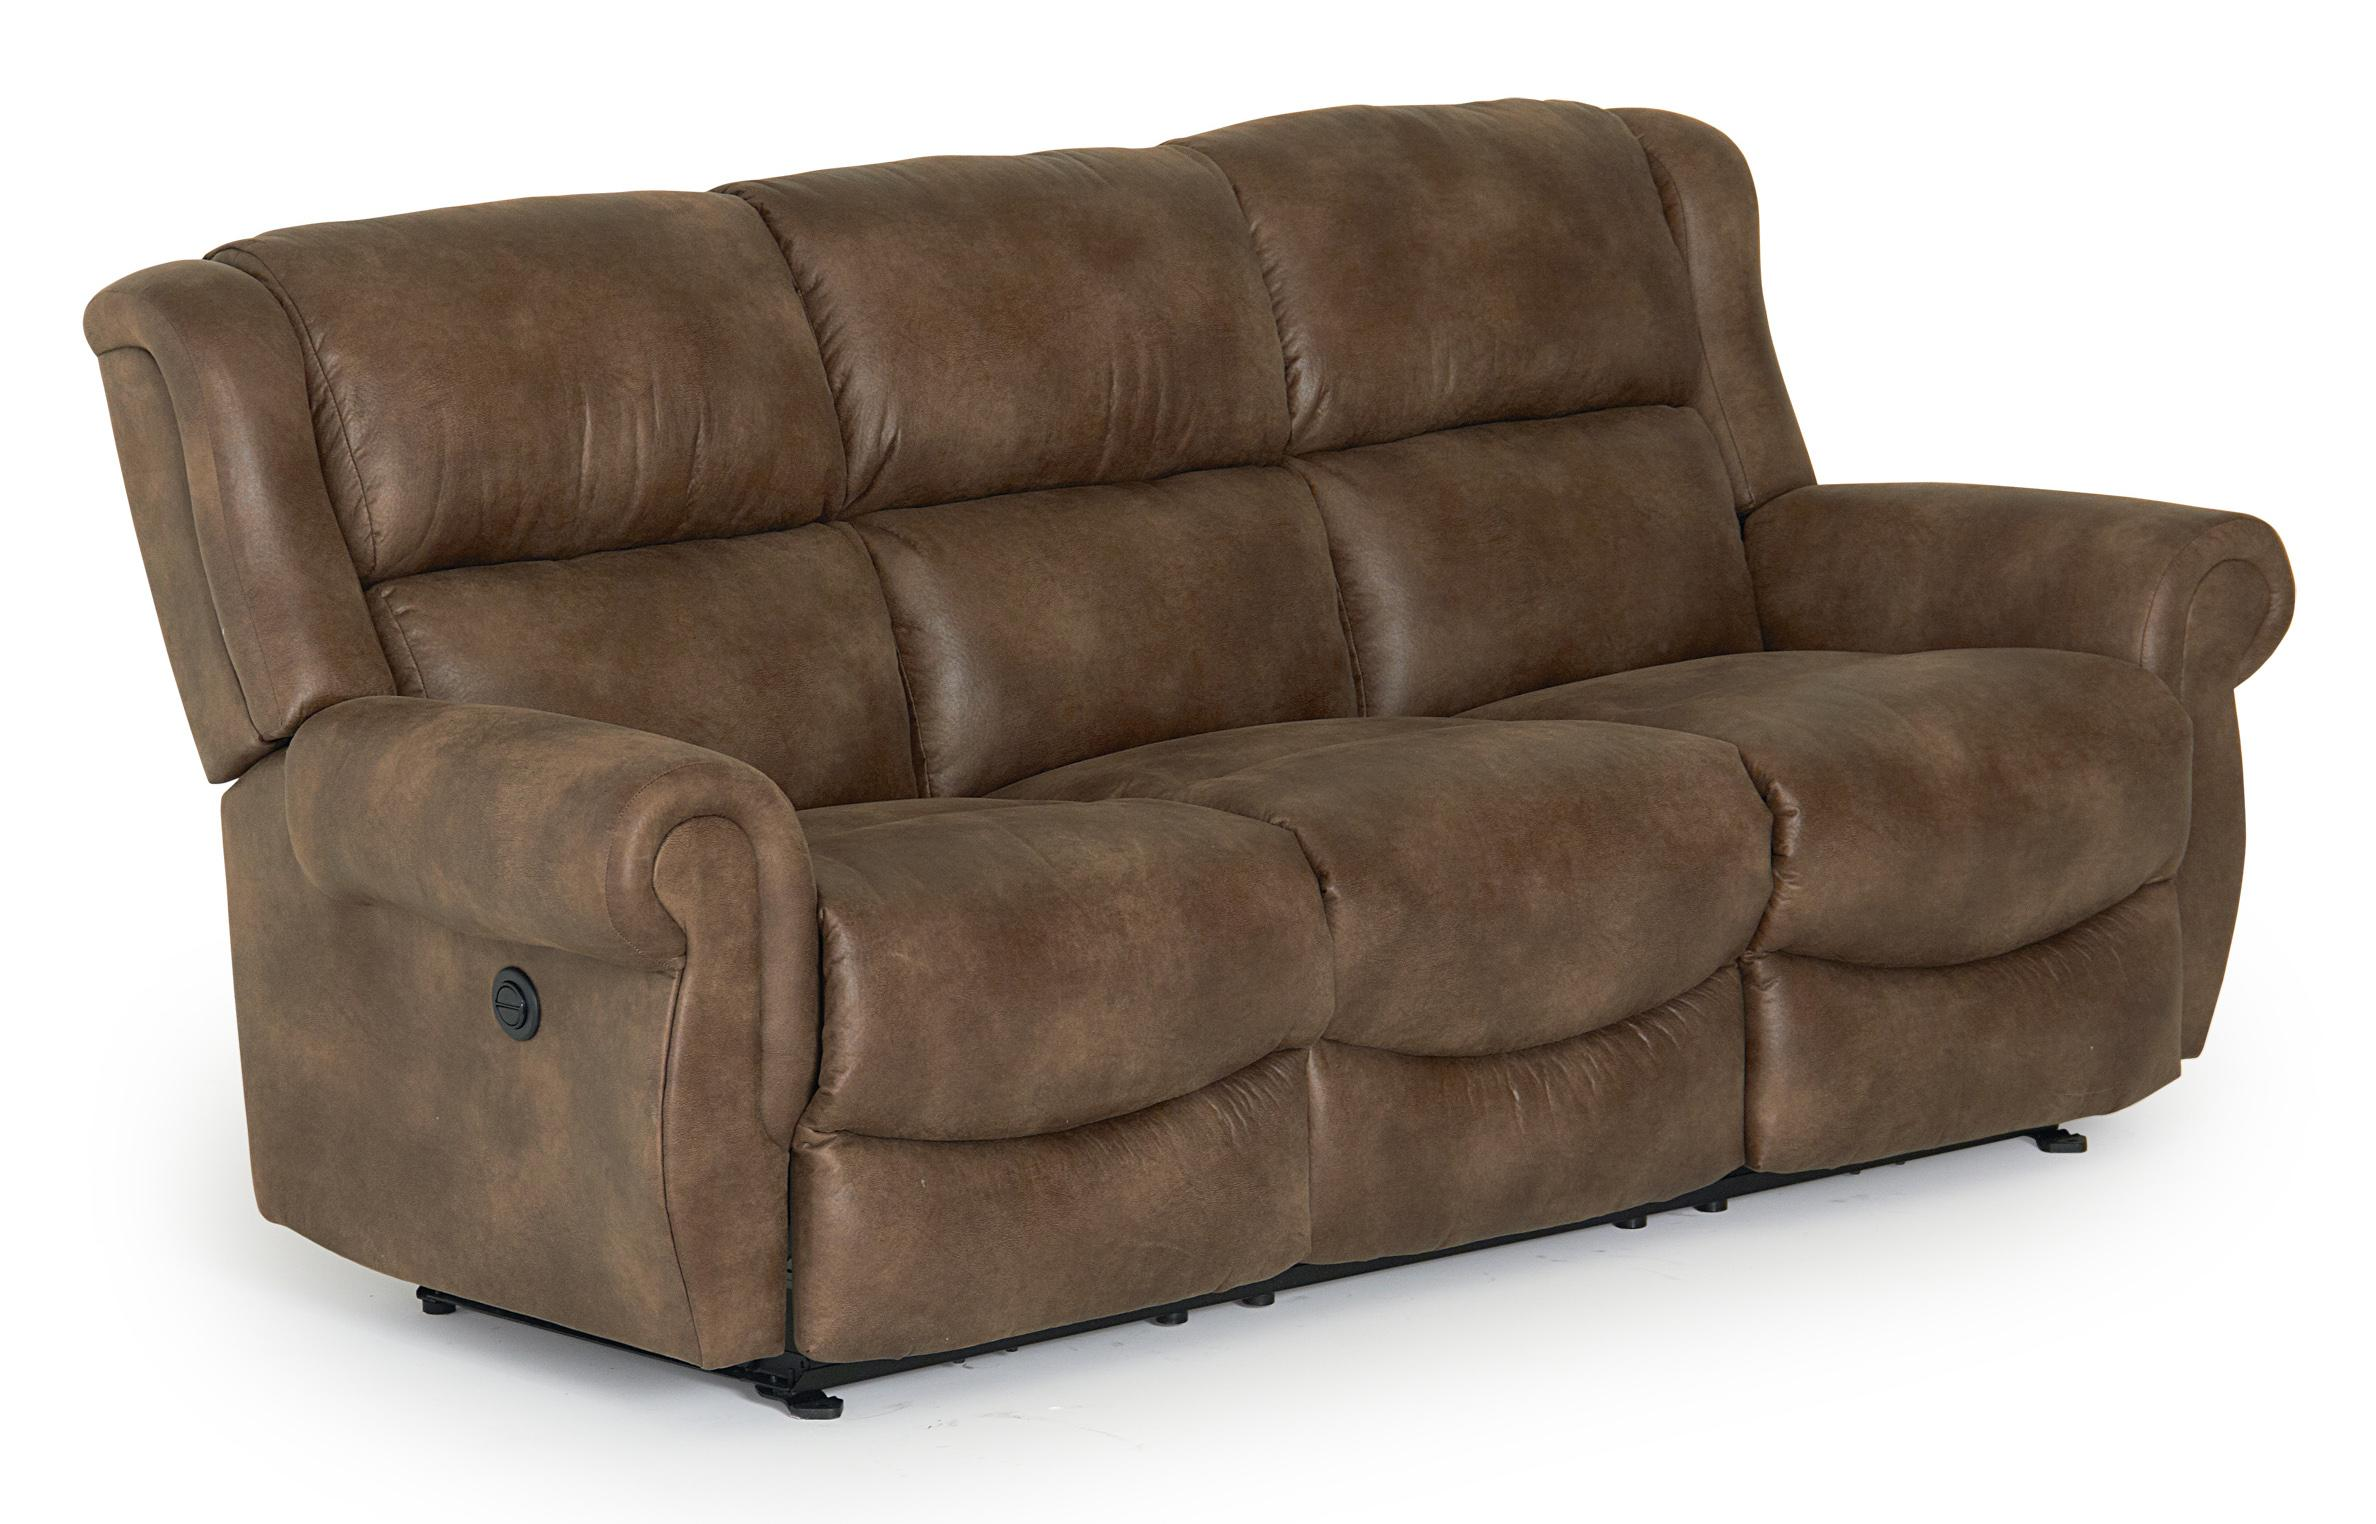 Best home furnishings terrill transitional power space saver reclining sofa wayside furniture - Sofa reclinable ...